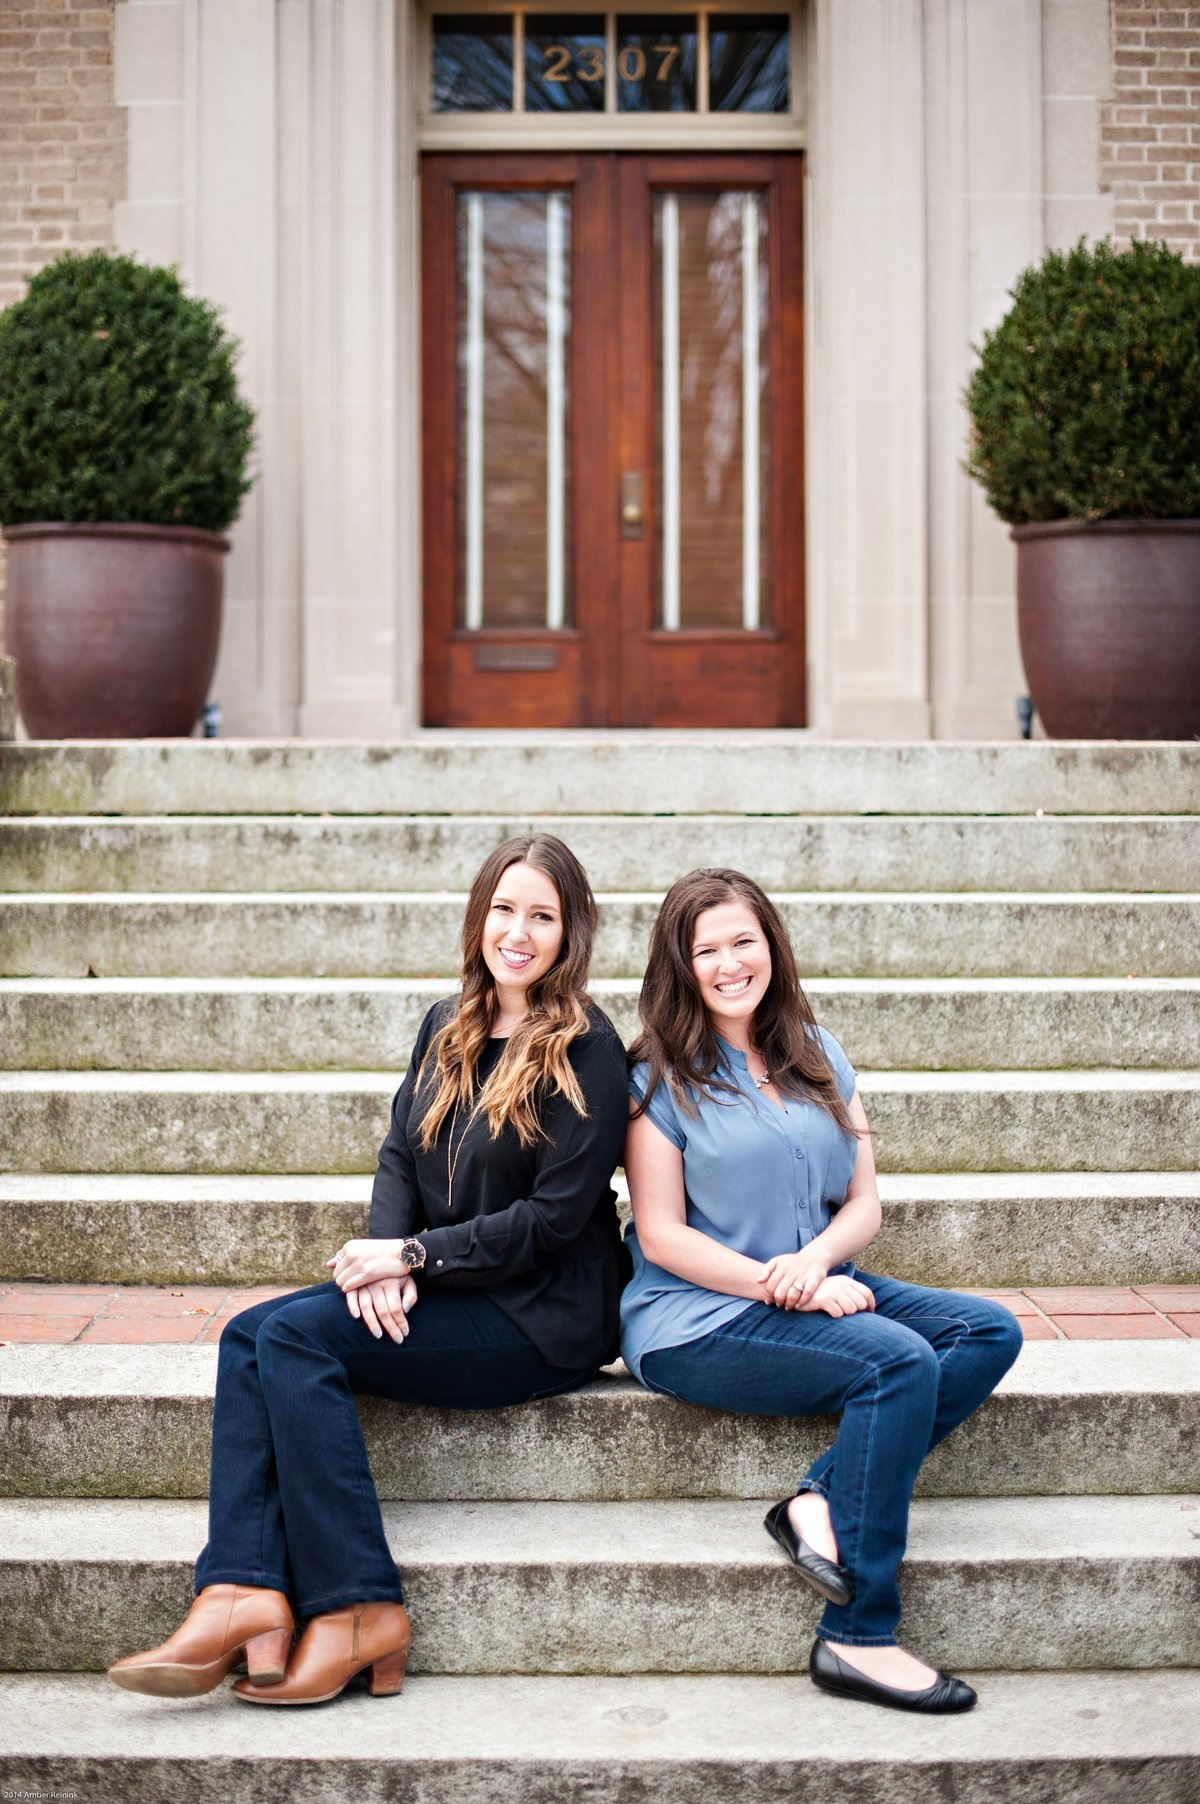 welcoming and friendly headshots for wedding planner team on location richmond va